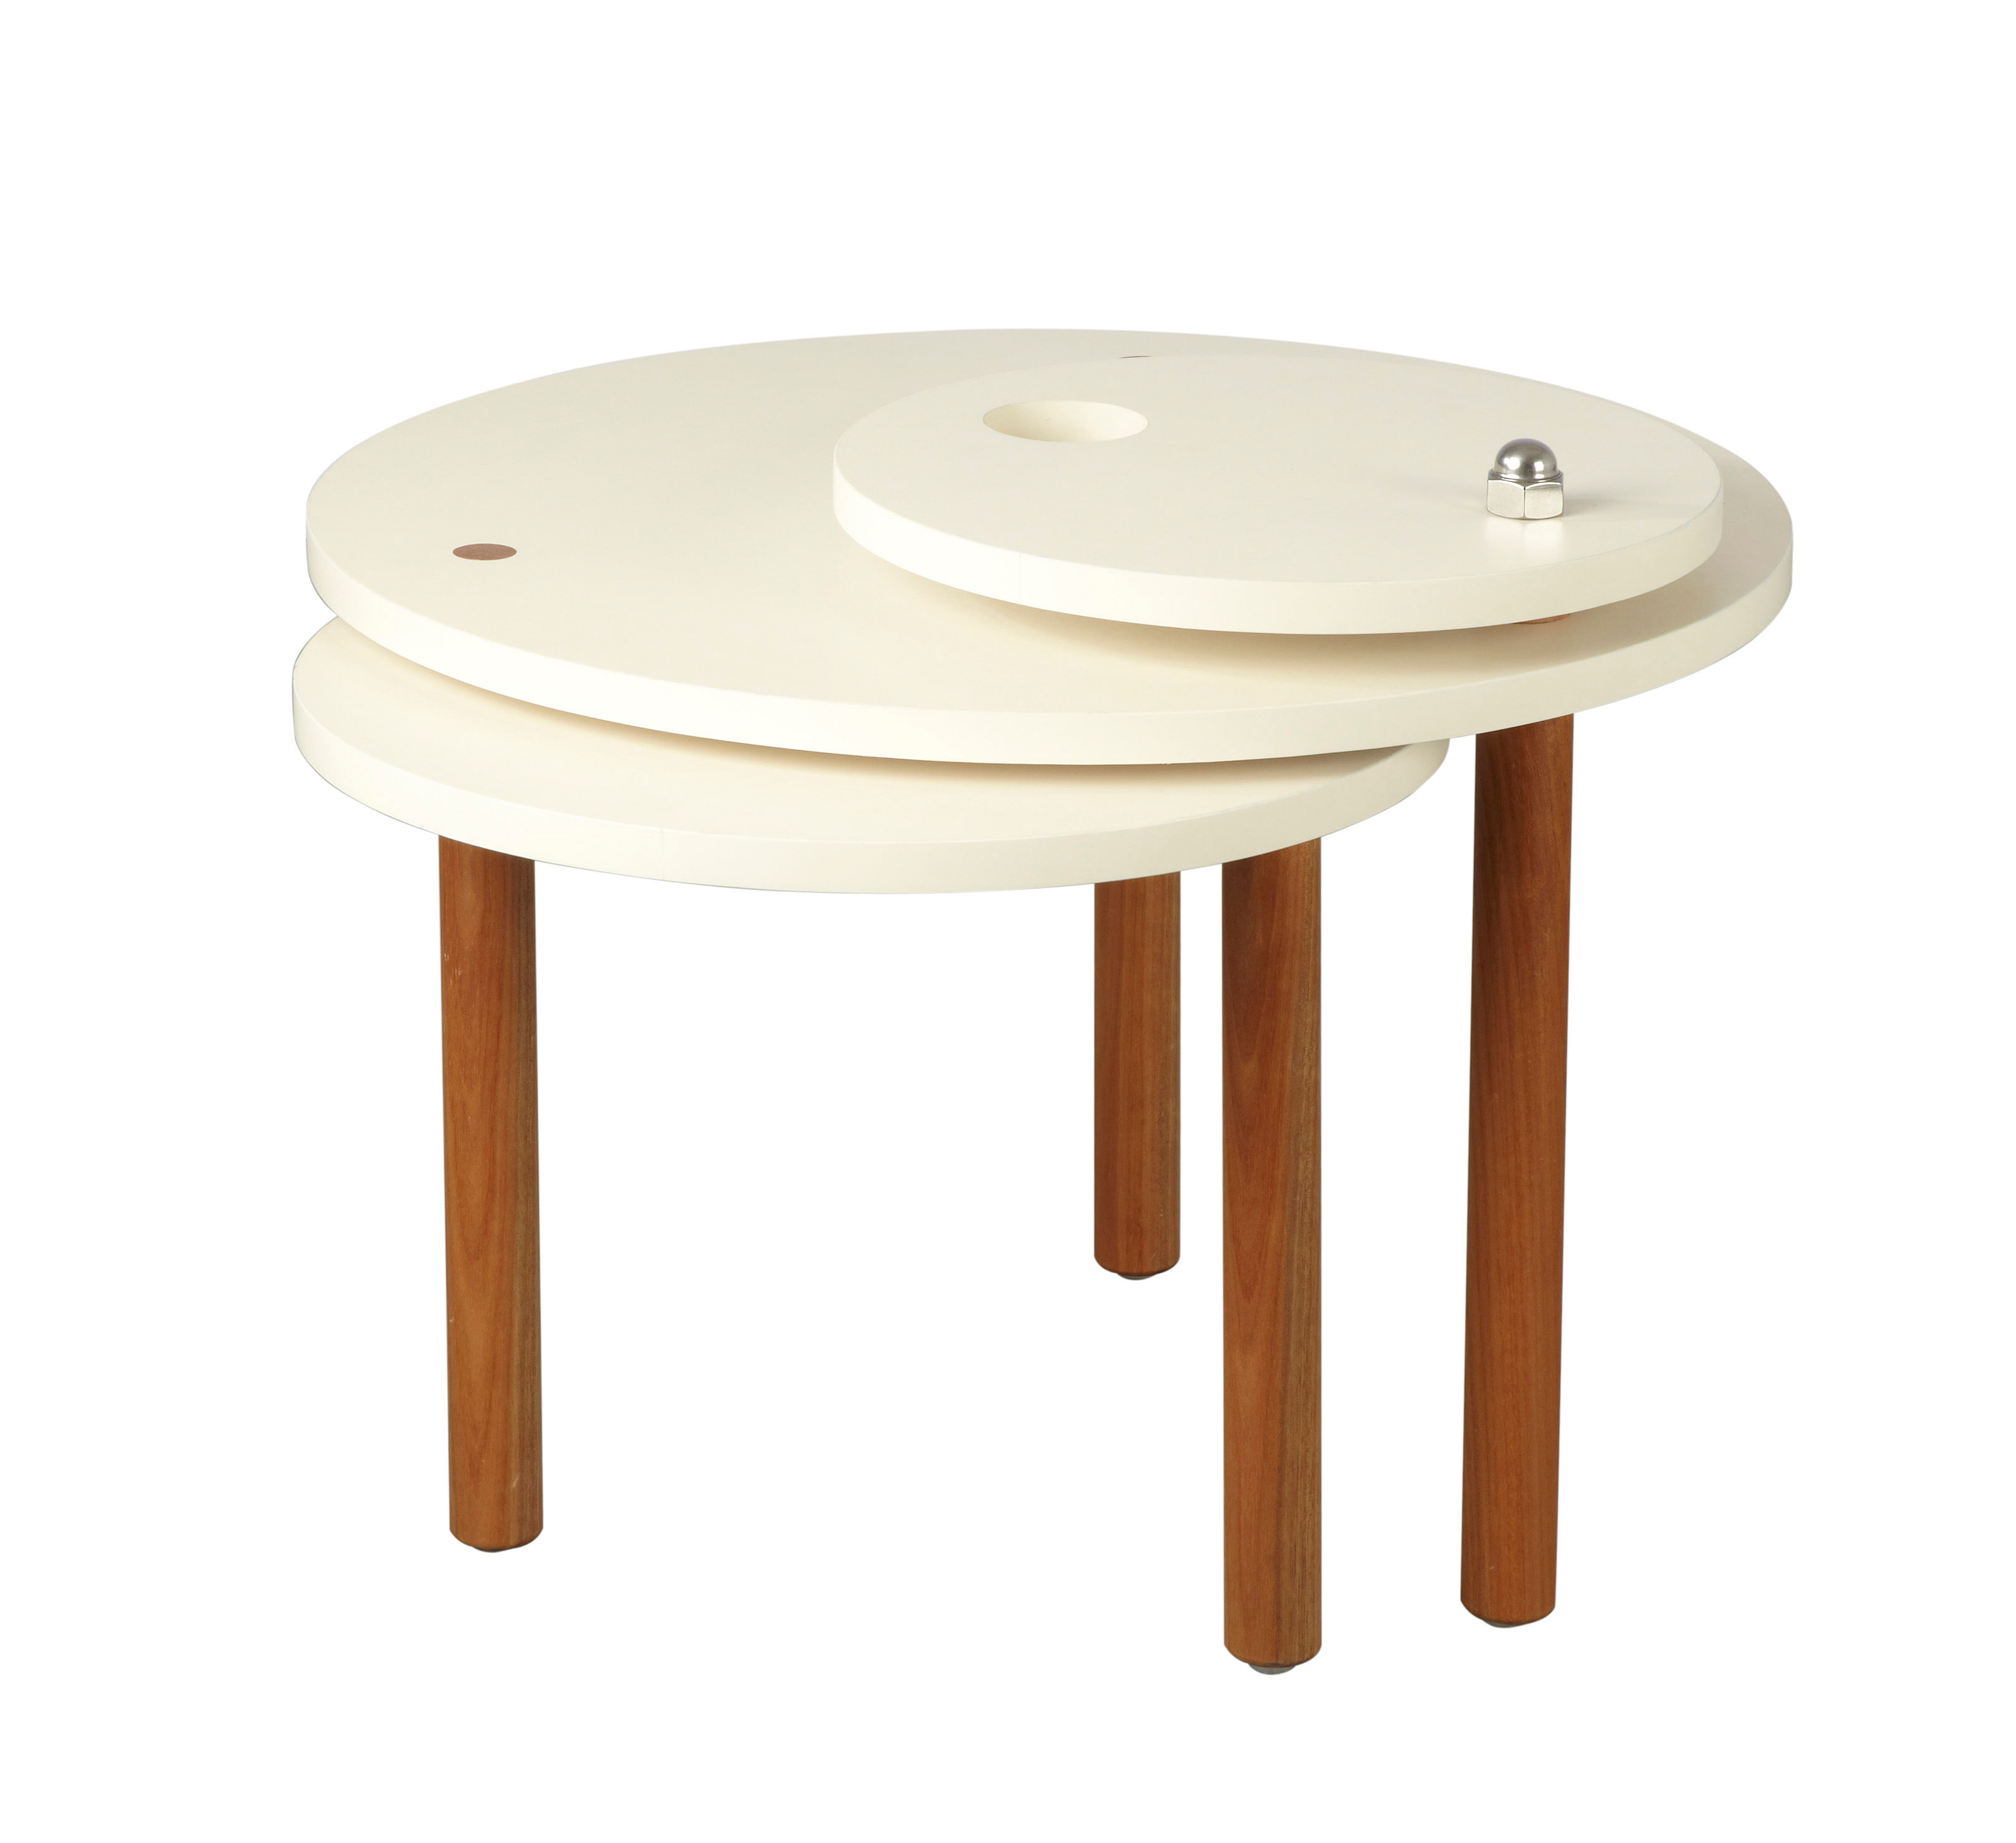 The Winning Piece Is Uni Space Saving Compact Table Which Can Be Extended Or Tucked In Depending On Its Usage Brains Behind This Clever Design